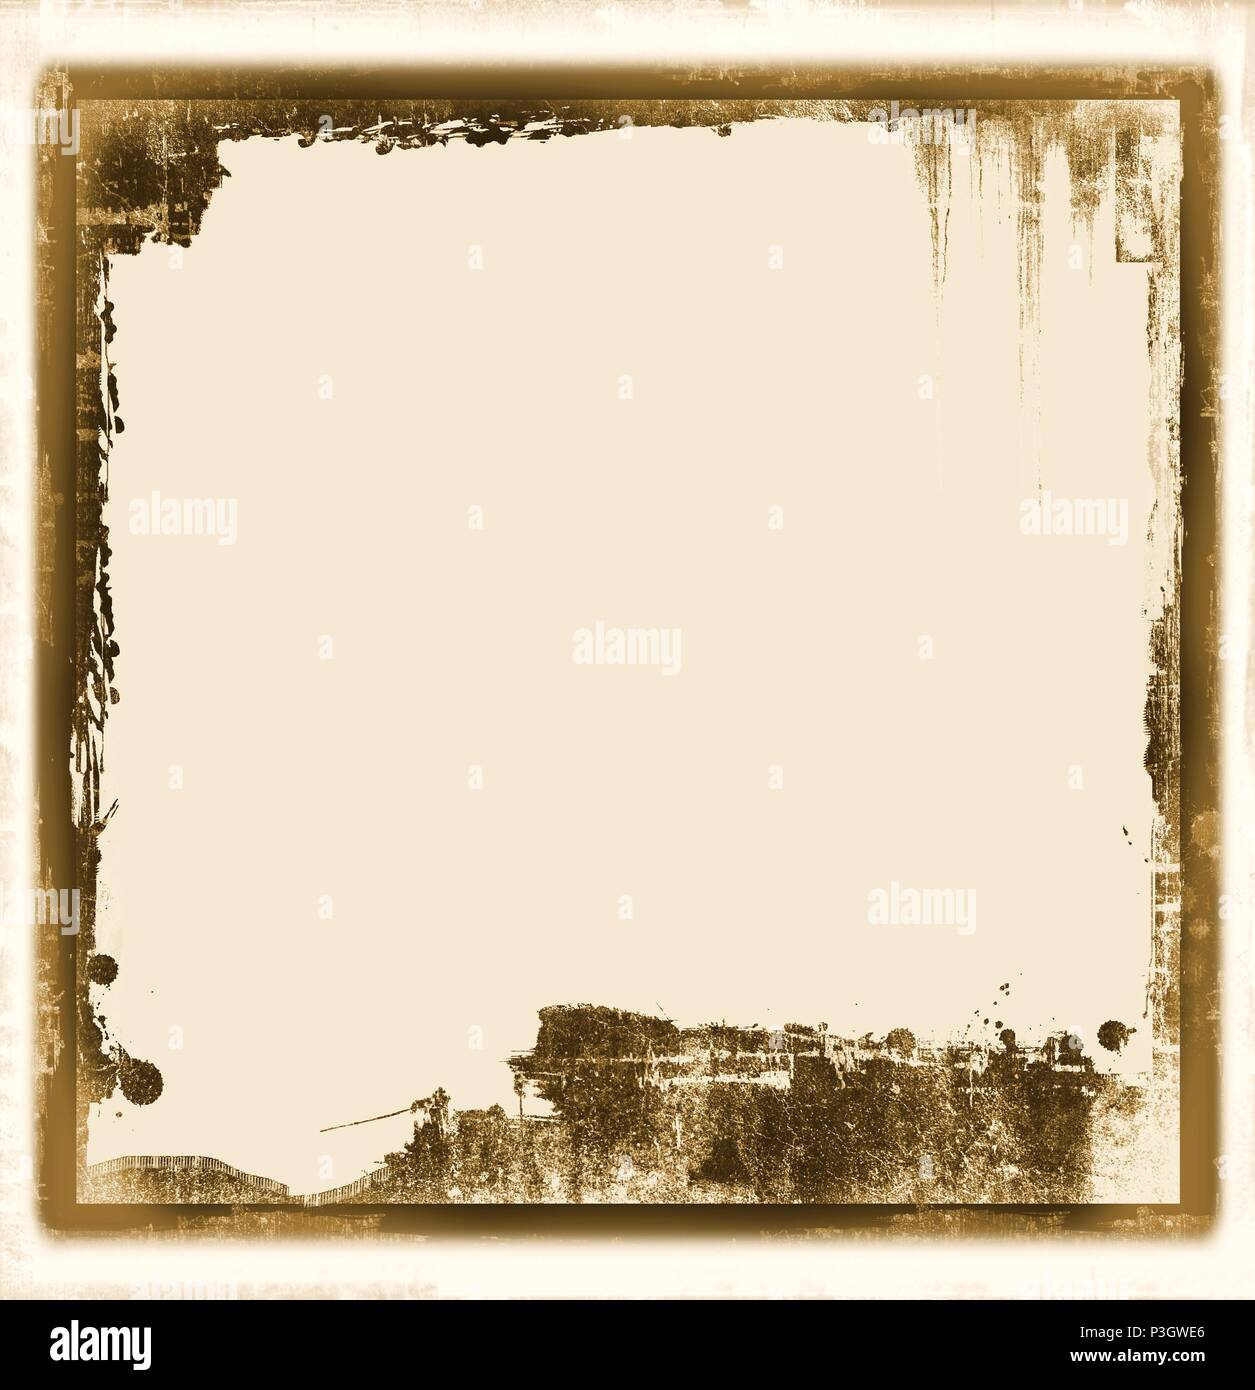 Vintage frame borders on sepia paper background Stock Photo ...